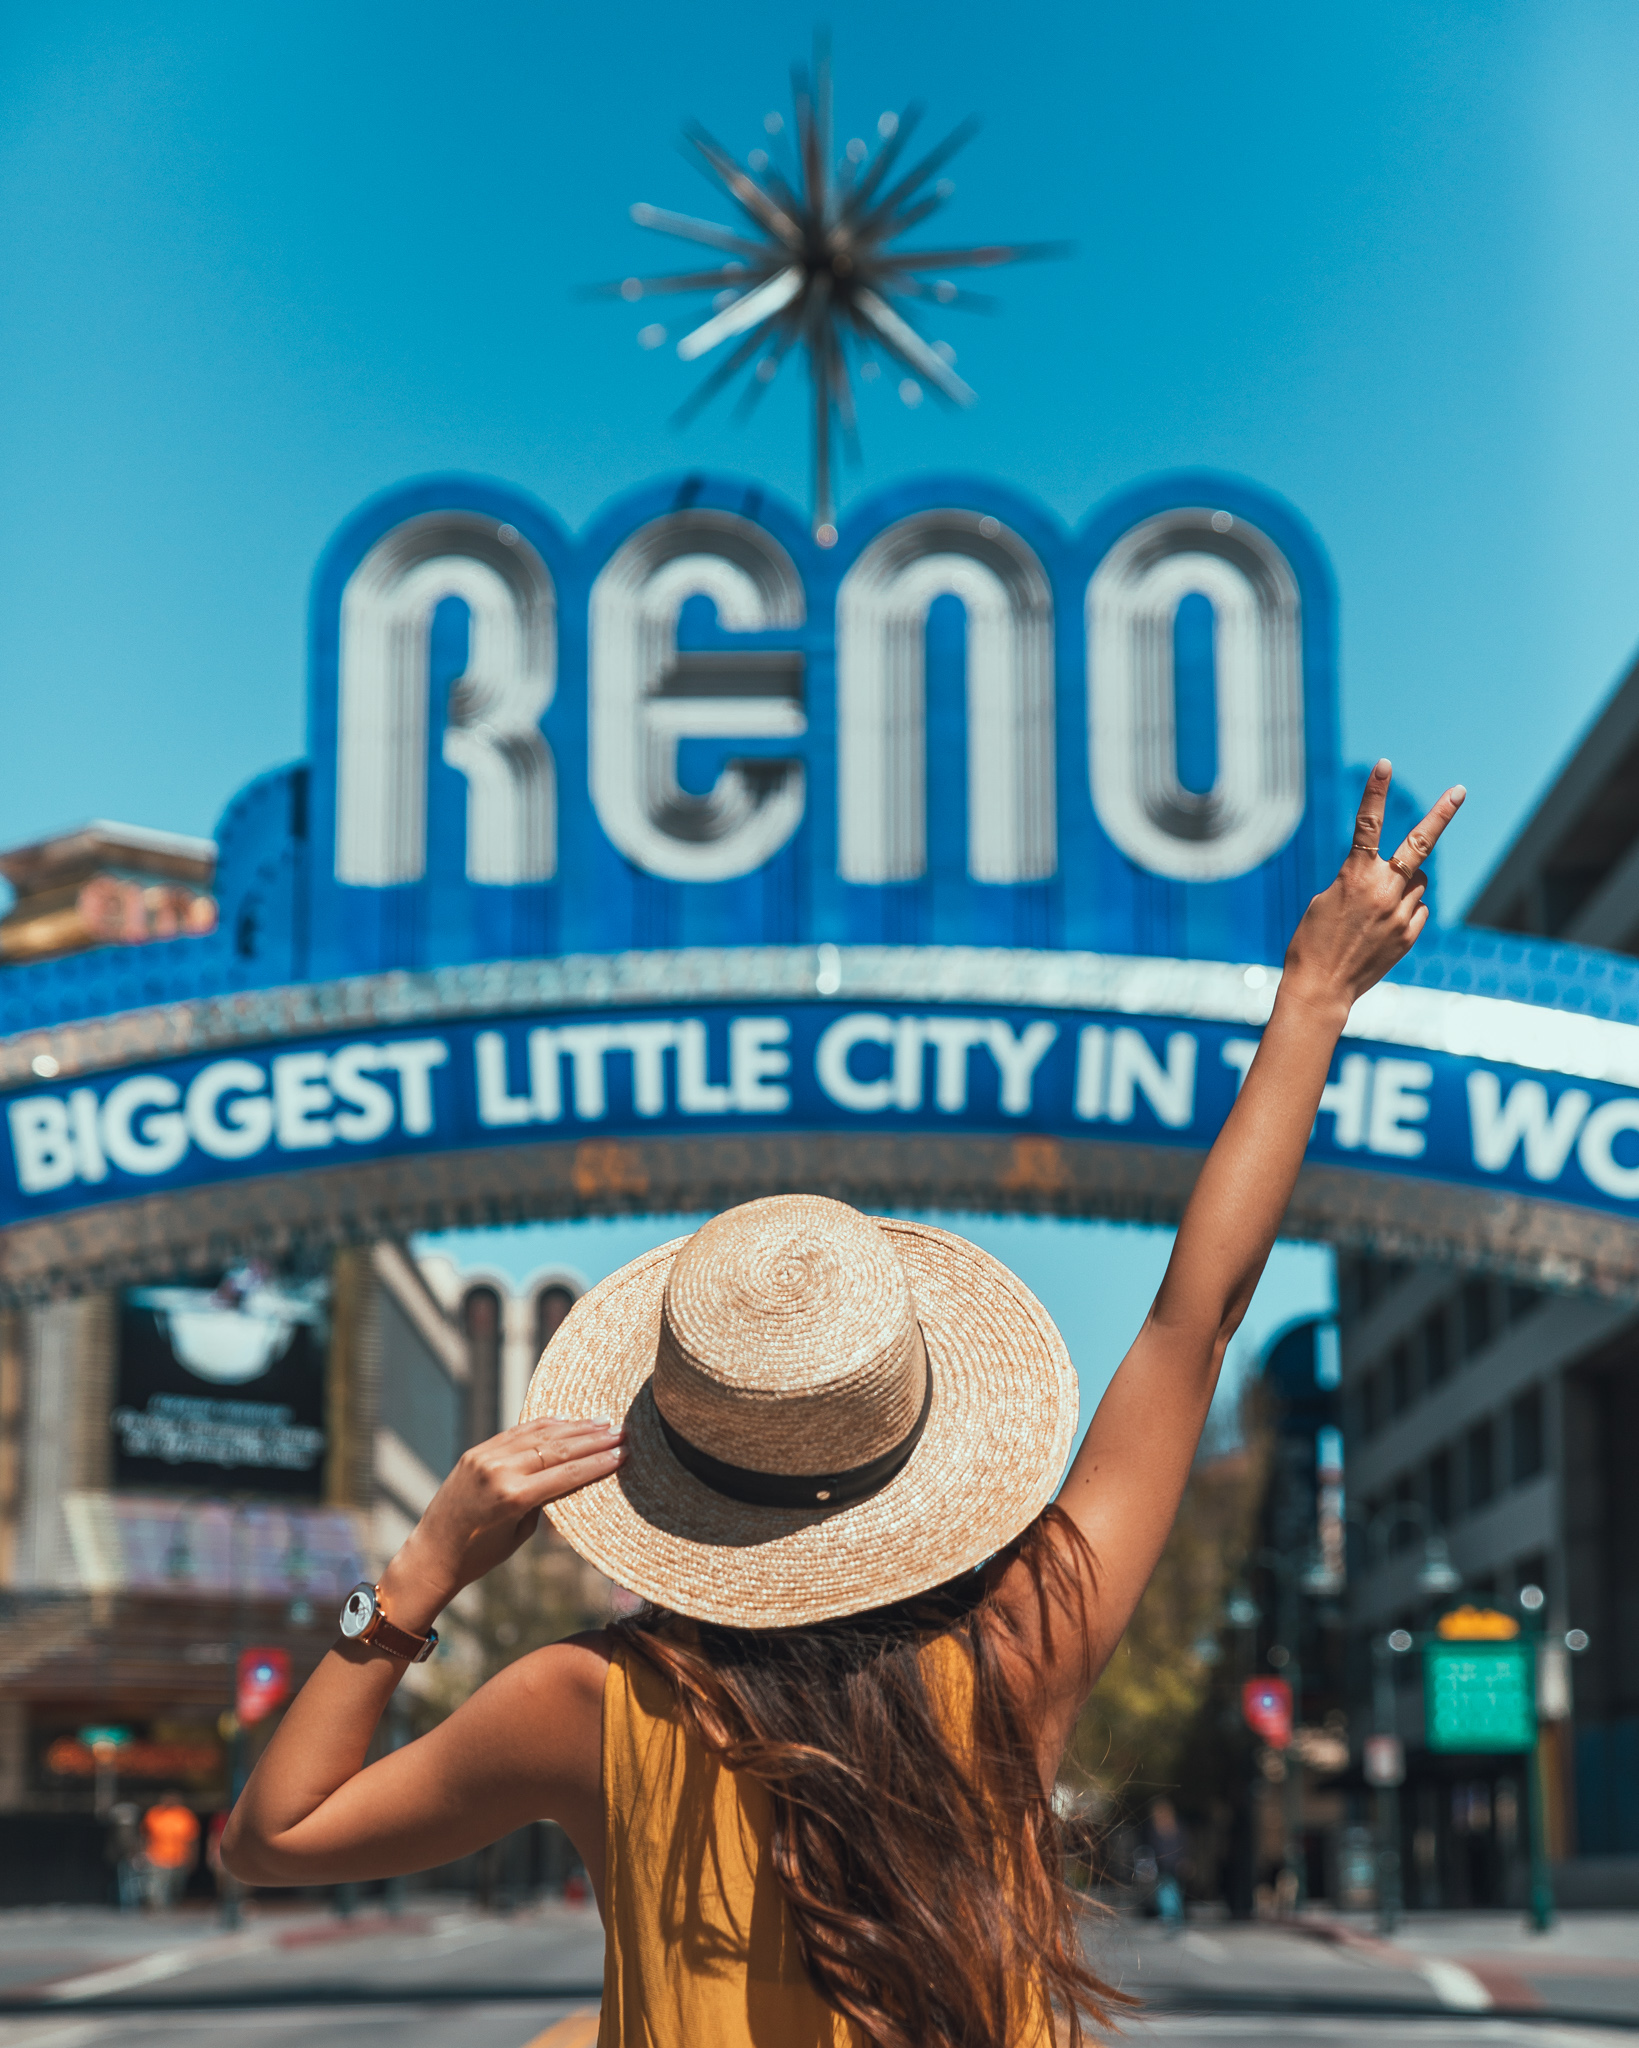 The Biggest Little City in the World: Reno // A Quick Guide to North Lake Tahoe & Reno